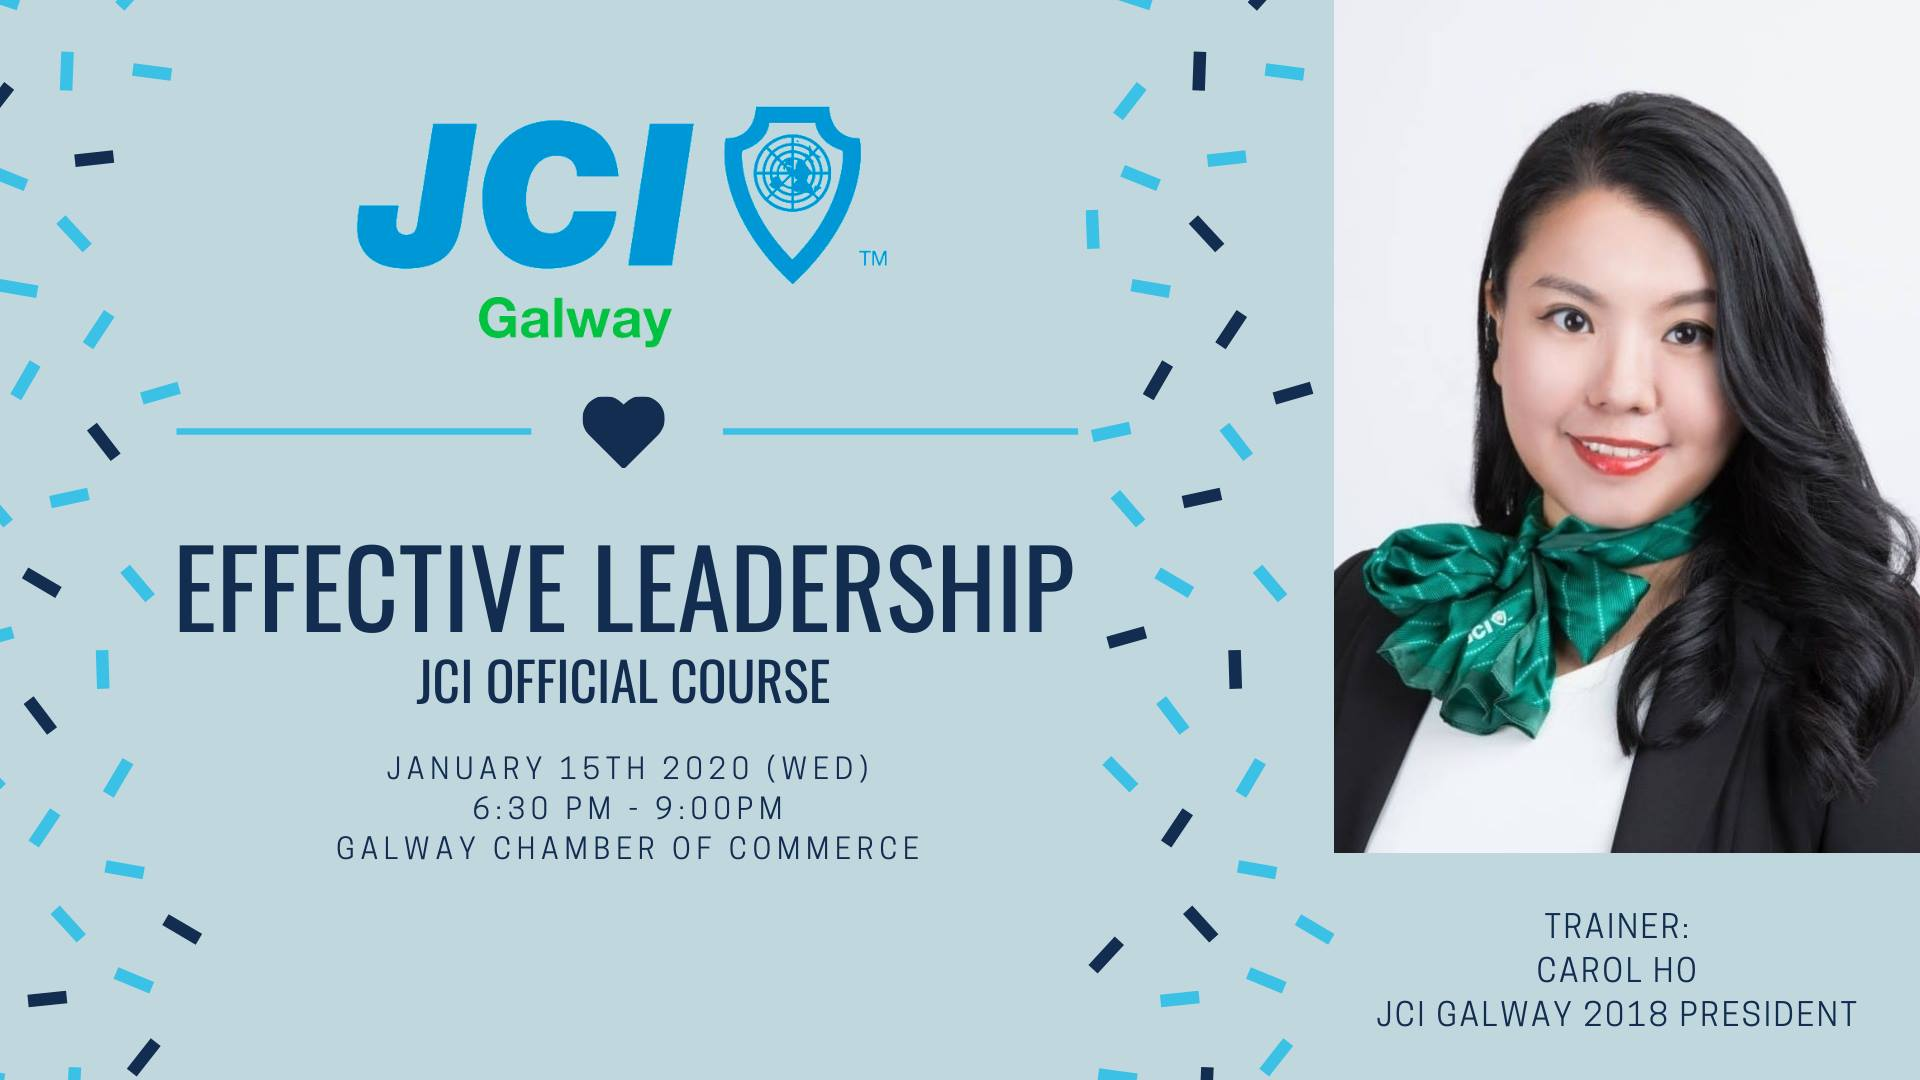 JCI Official Course - Effective Leadership